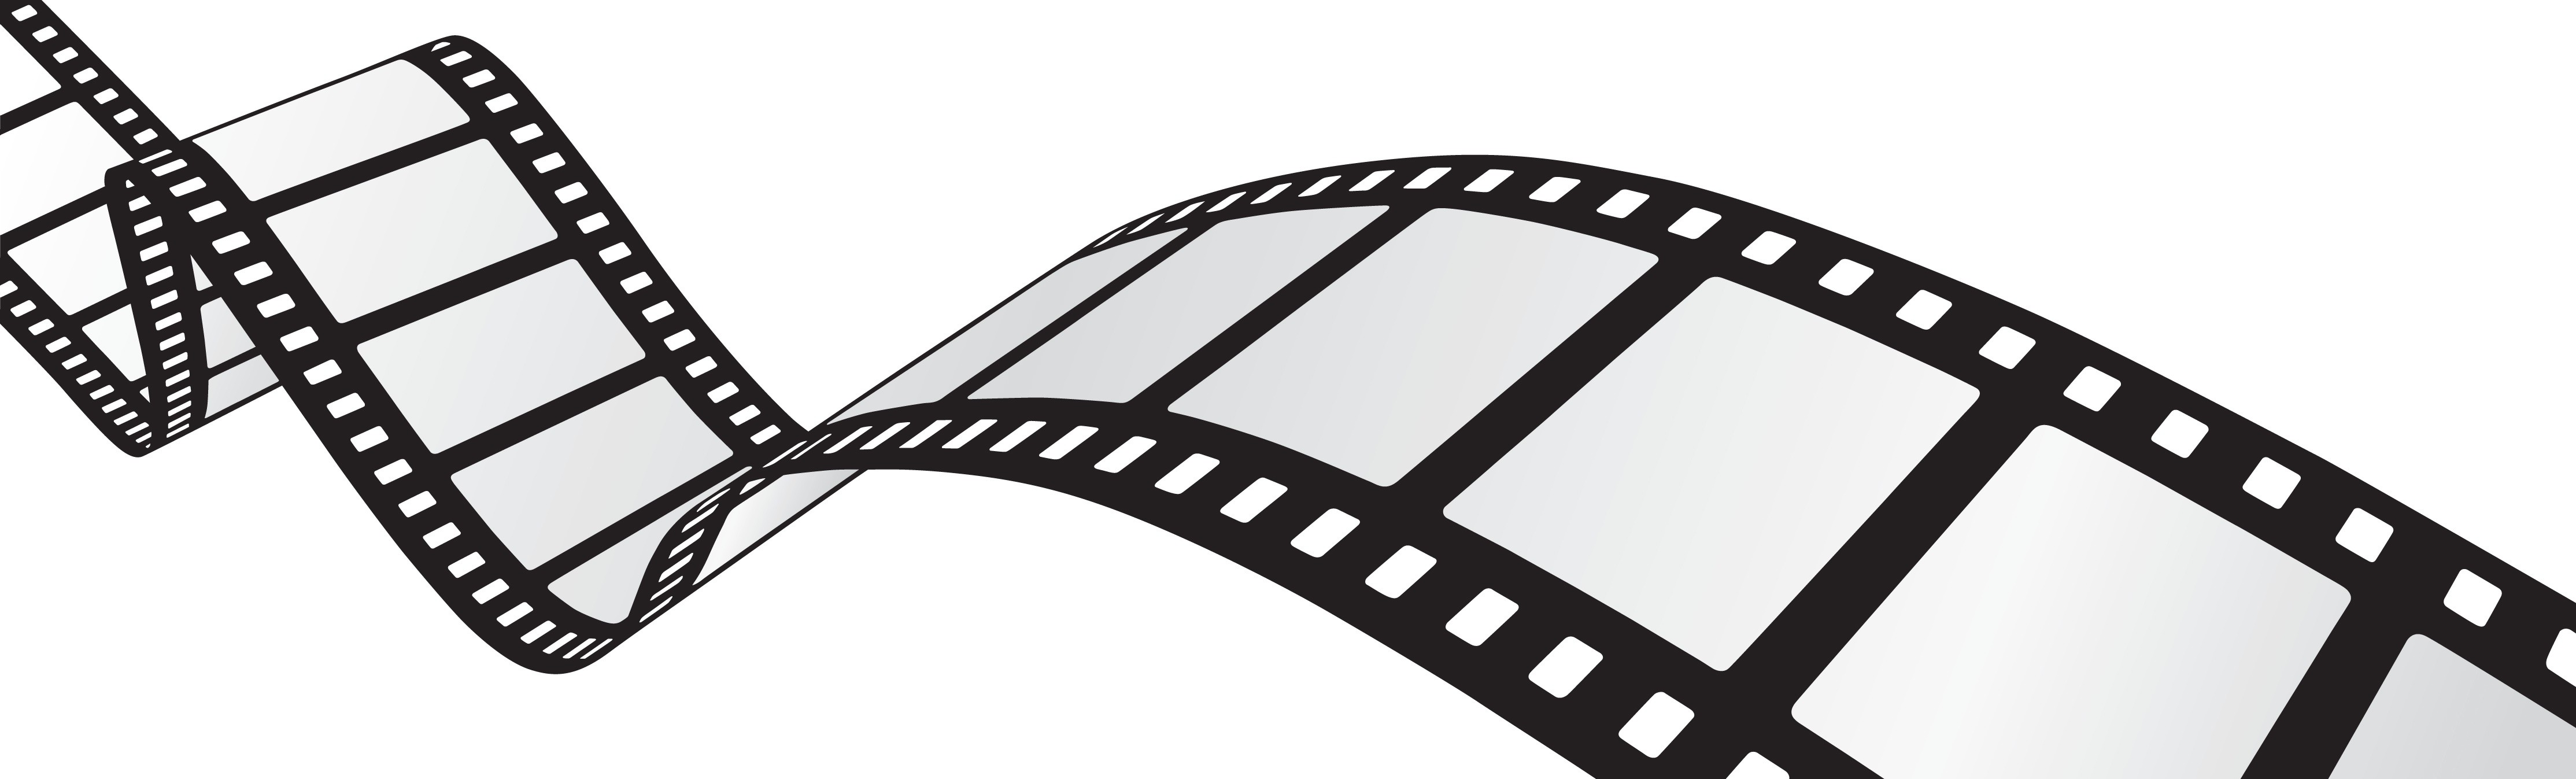 Movie Reel PNG